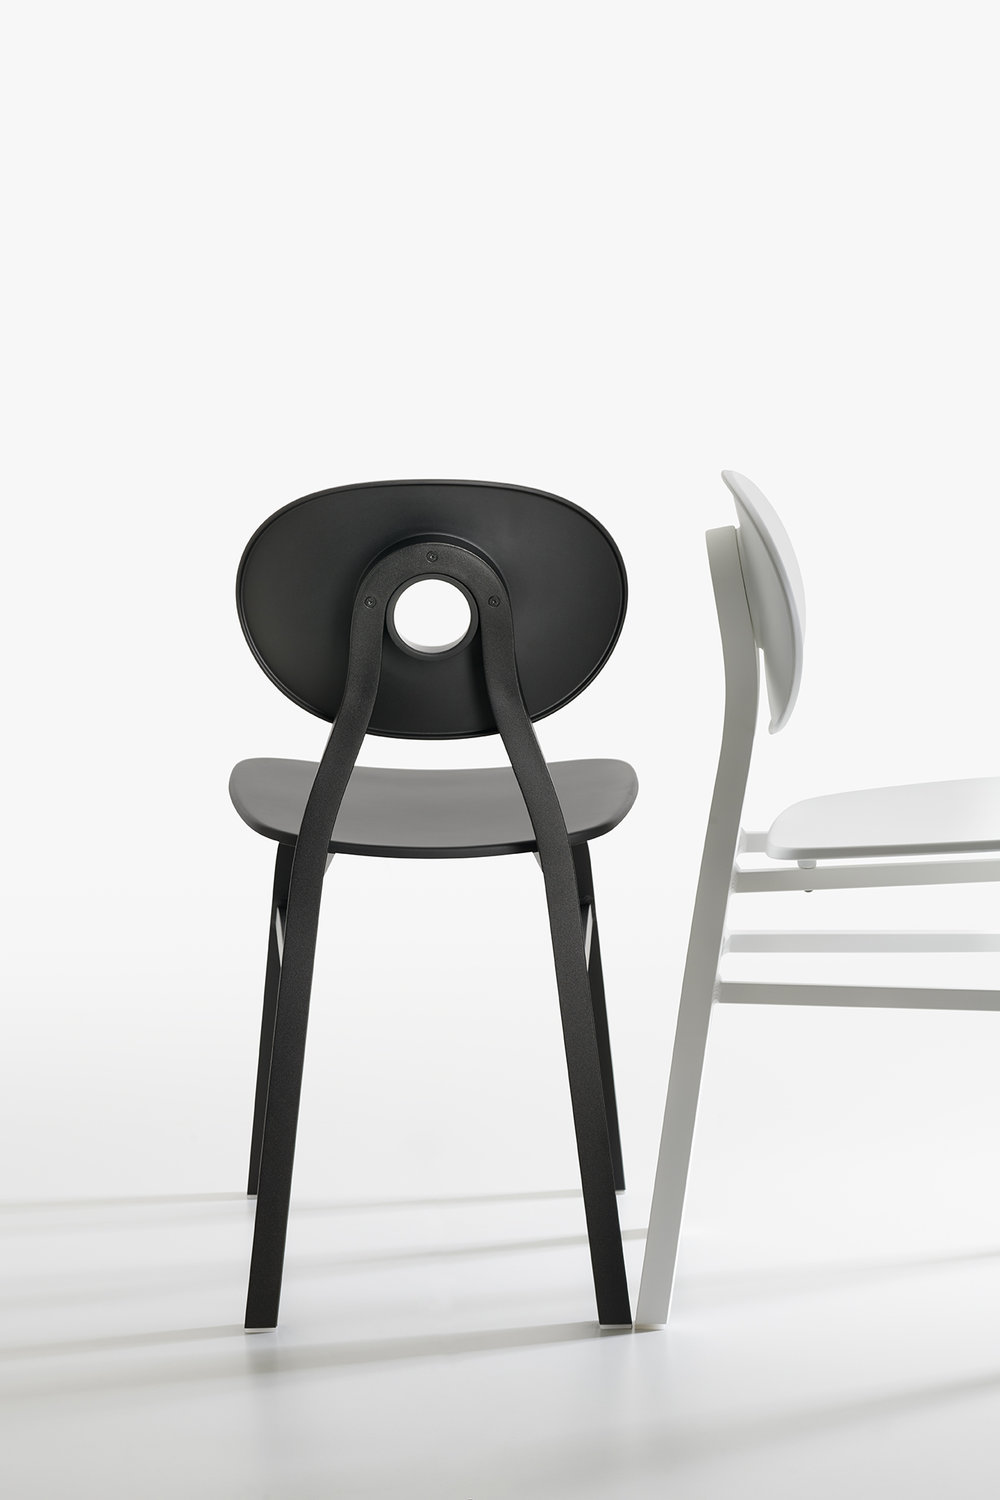 The 'Elipse' chair by Patrick Jouin for Zanotta. Aluminium frame with polypropylene seat. Photograph by Miro Zagnoli.